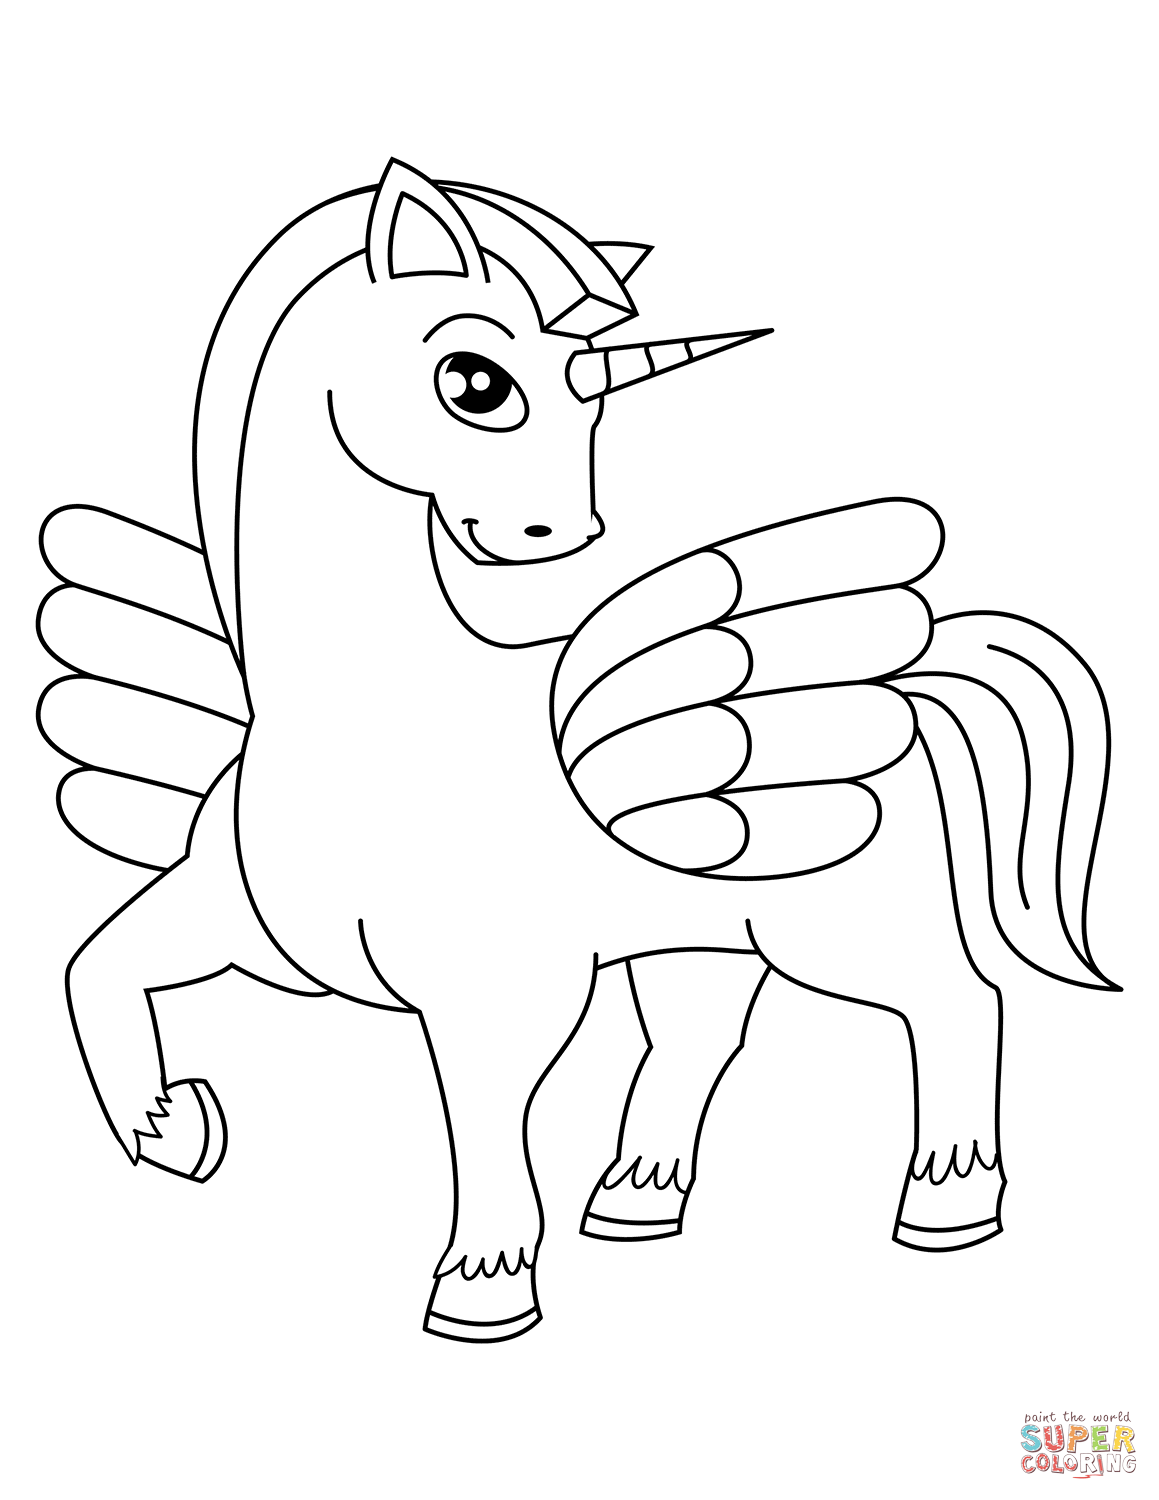 realistic unicorn coloring pages difficult and hard coloring page of realistic unicorn coloring unicorn pages realistic